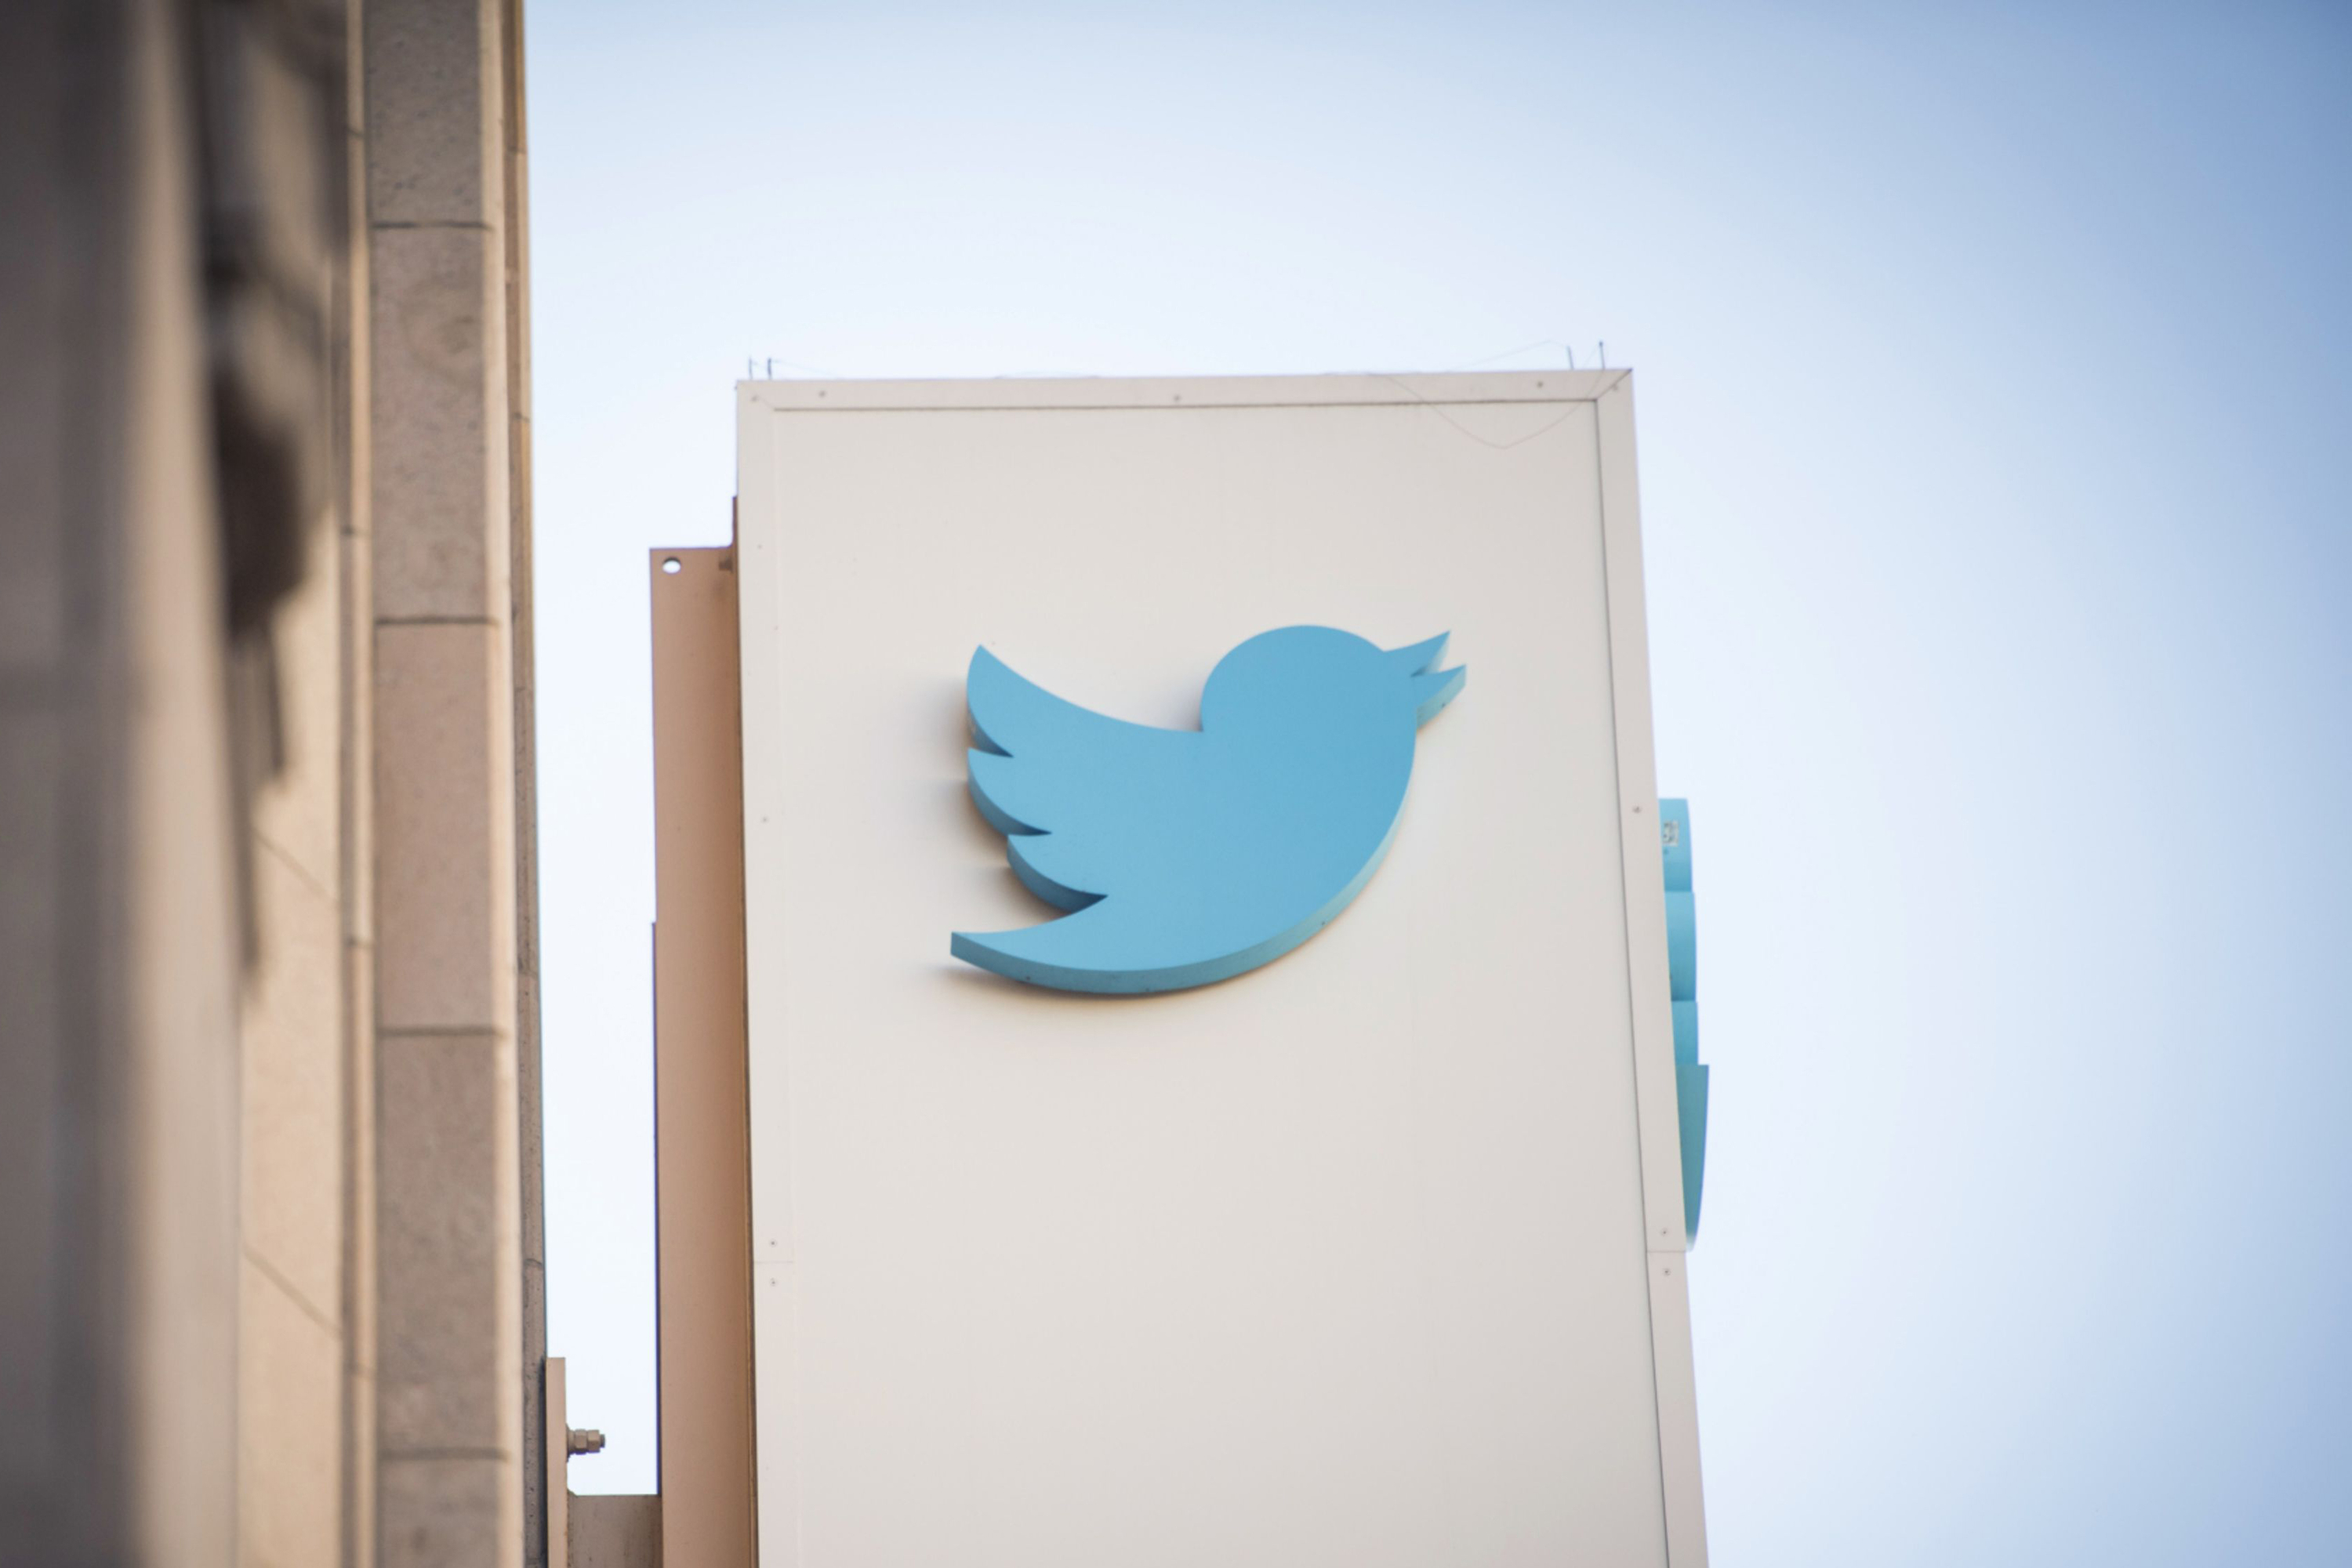 Twitter to let users sell tickets to live audio chats on Spaces